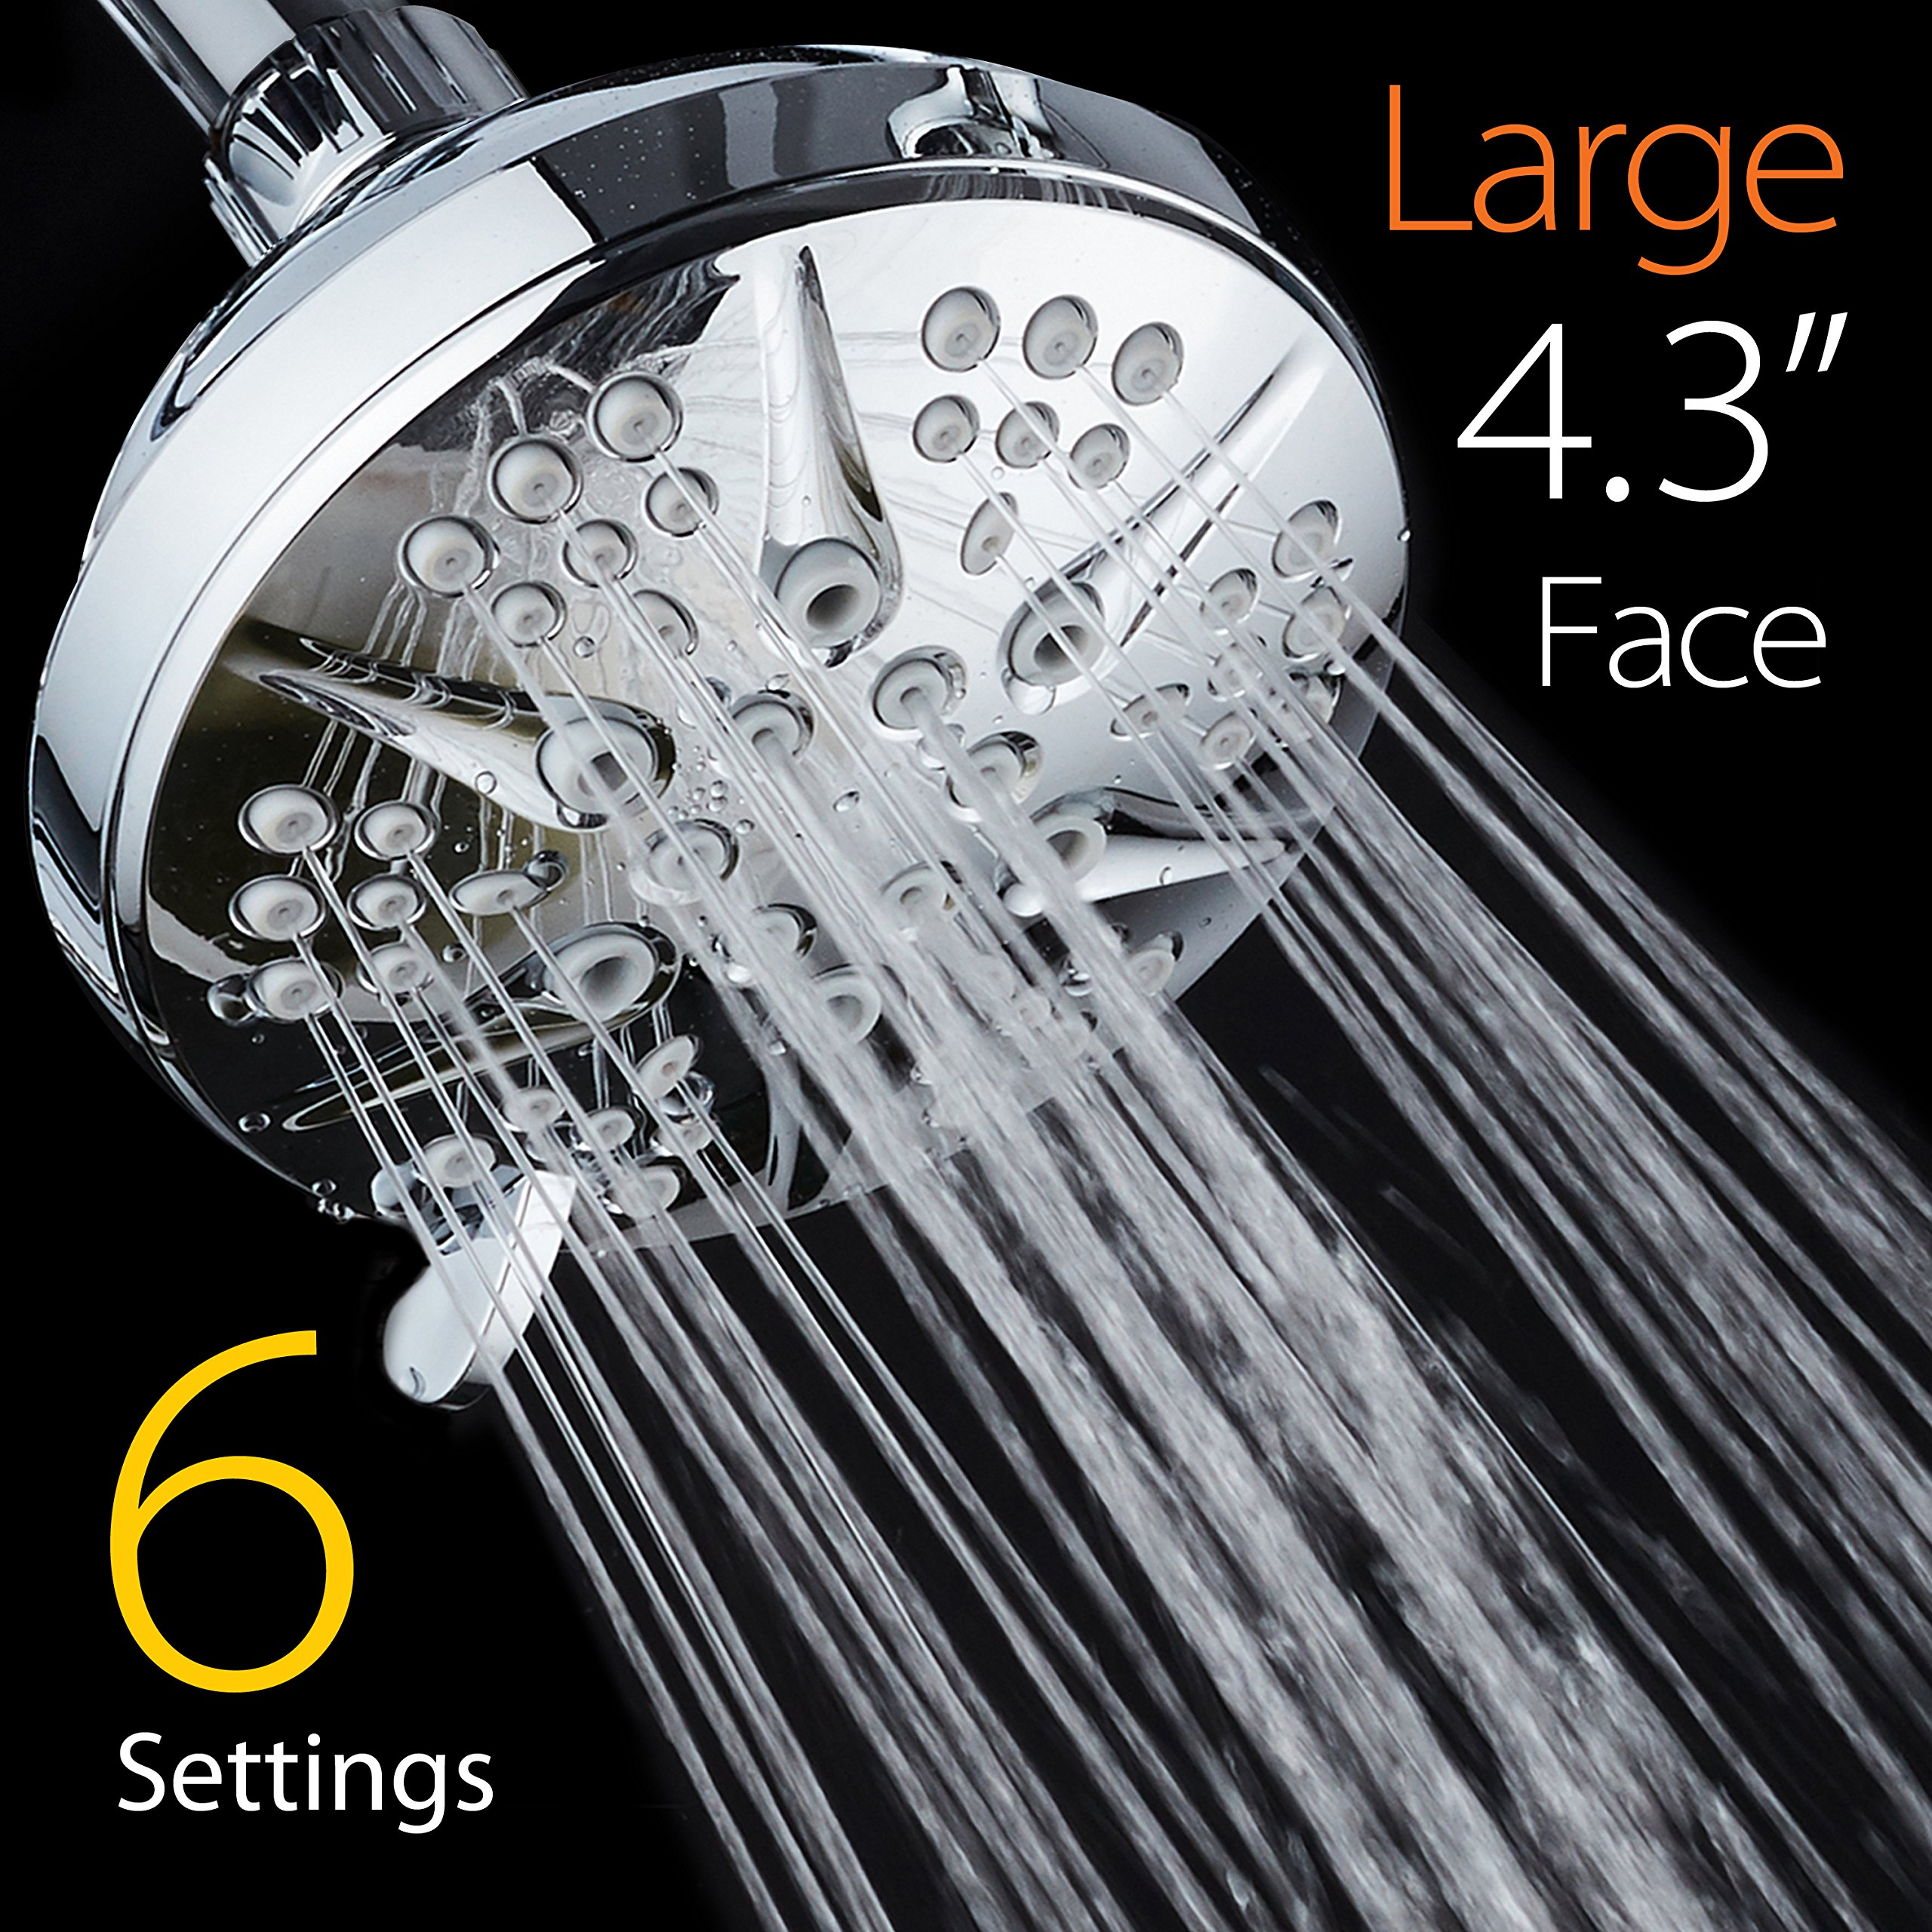 NOTILUS Giant High-Pressure 6-setting 4.3'' Face Modern Luxury Spa Shower Head - Solid Brass Metal Connection Nut, Angle-Adjustable Ball Joint, Anti-Clog Jets, All-Chrome Finish, by HotelSpa (Image #1)